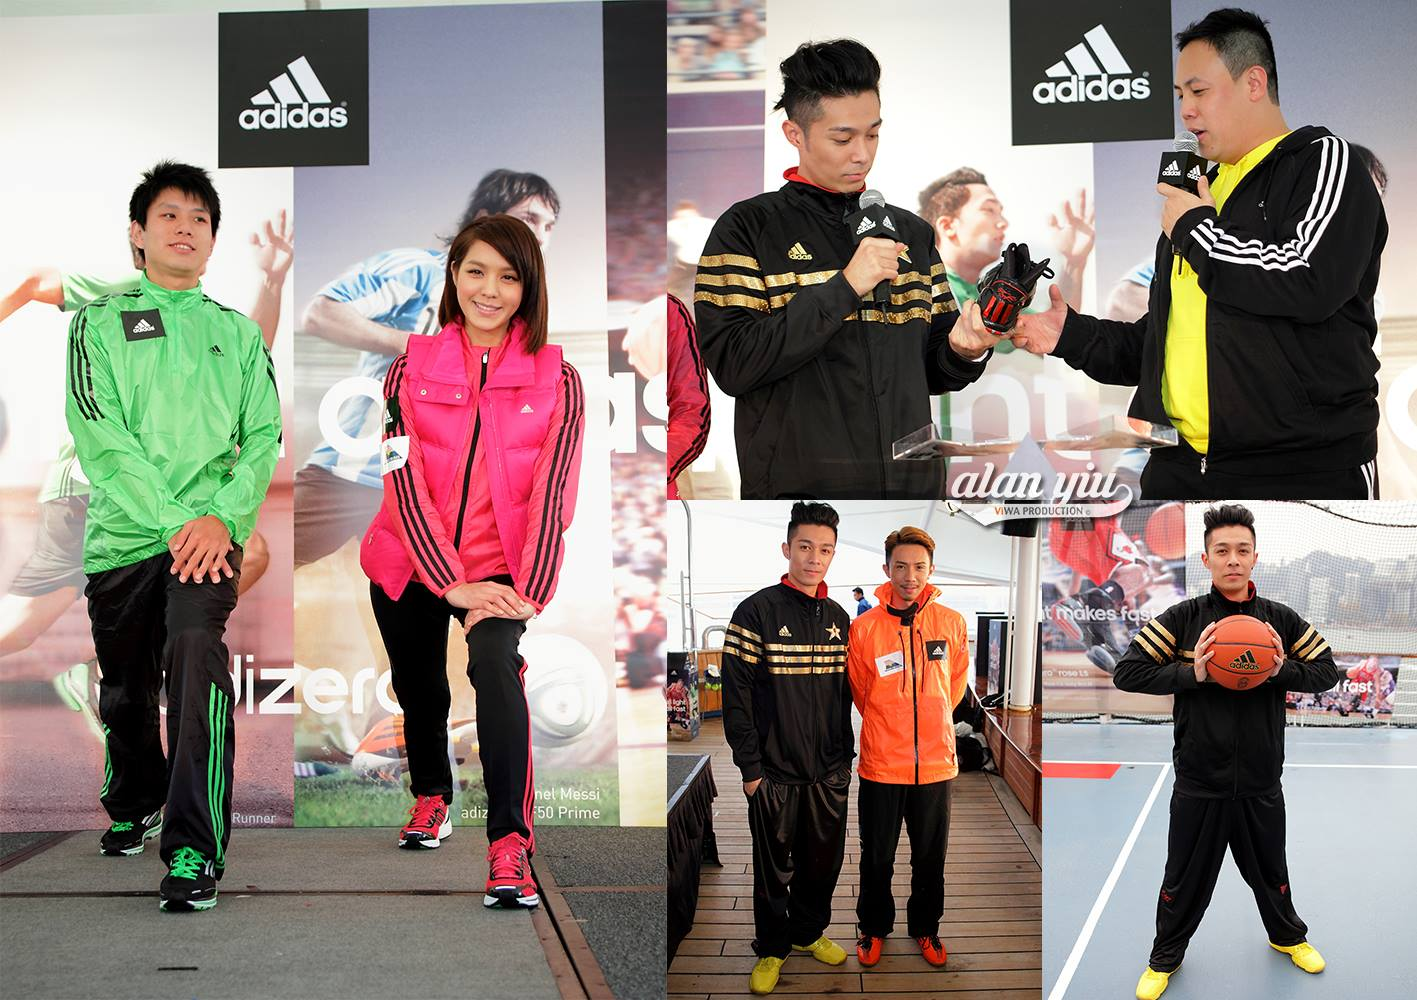 adidas-adizero-product-launch-alan-yiu-photography-viwa-production-03